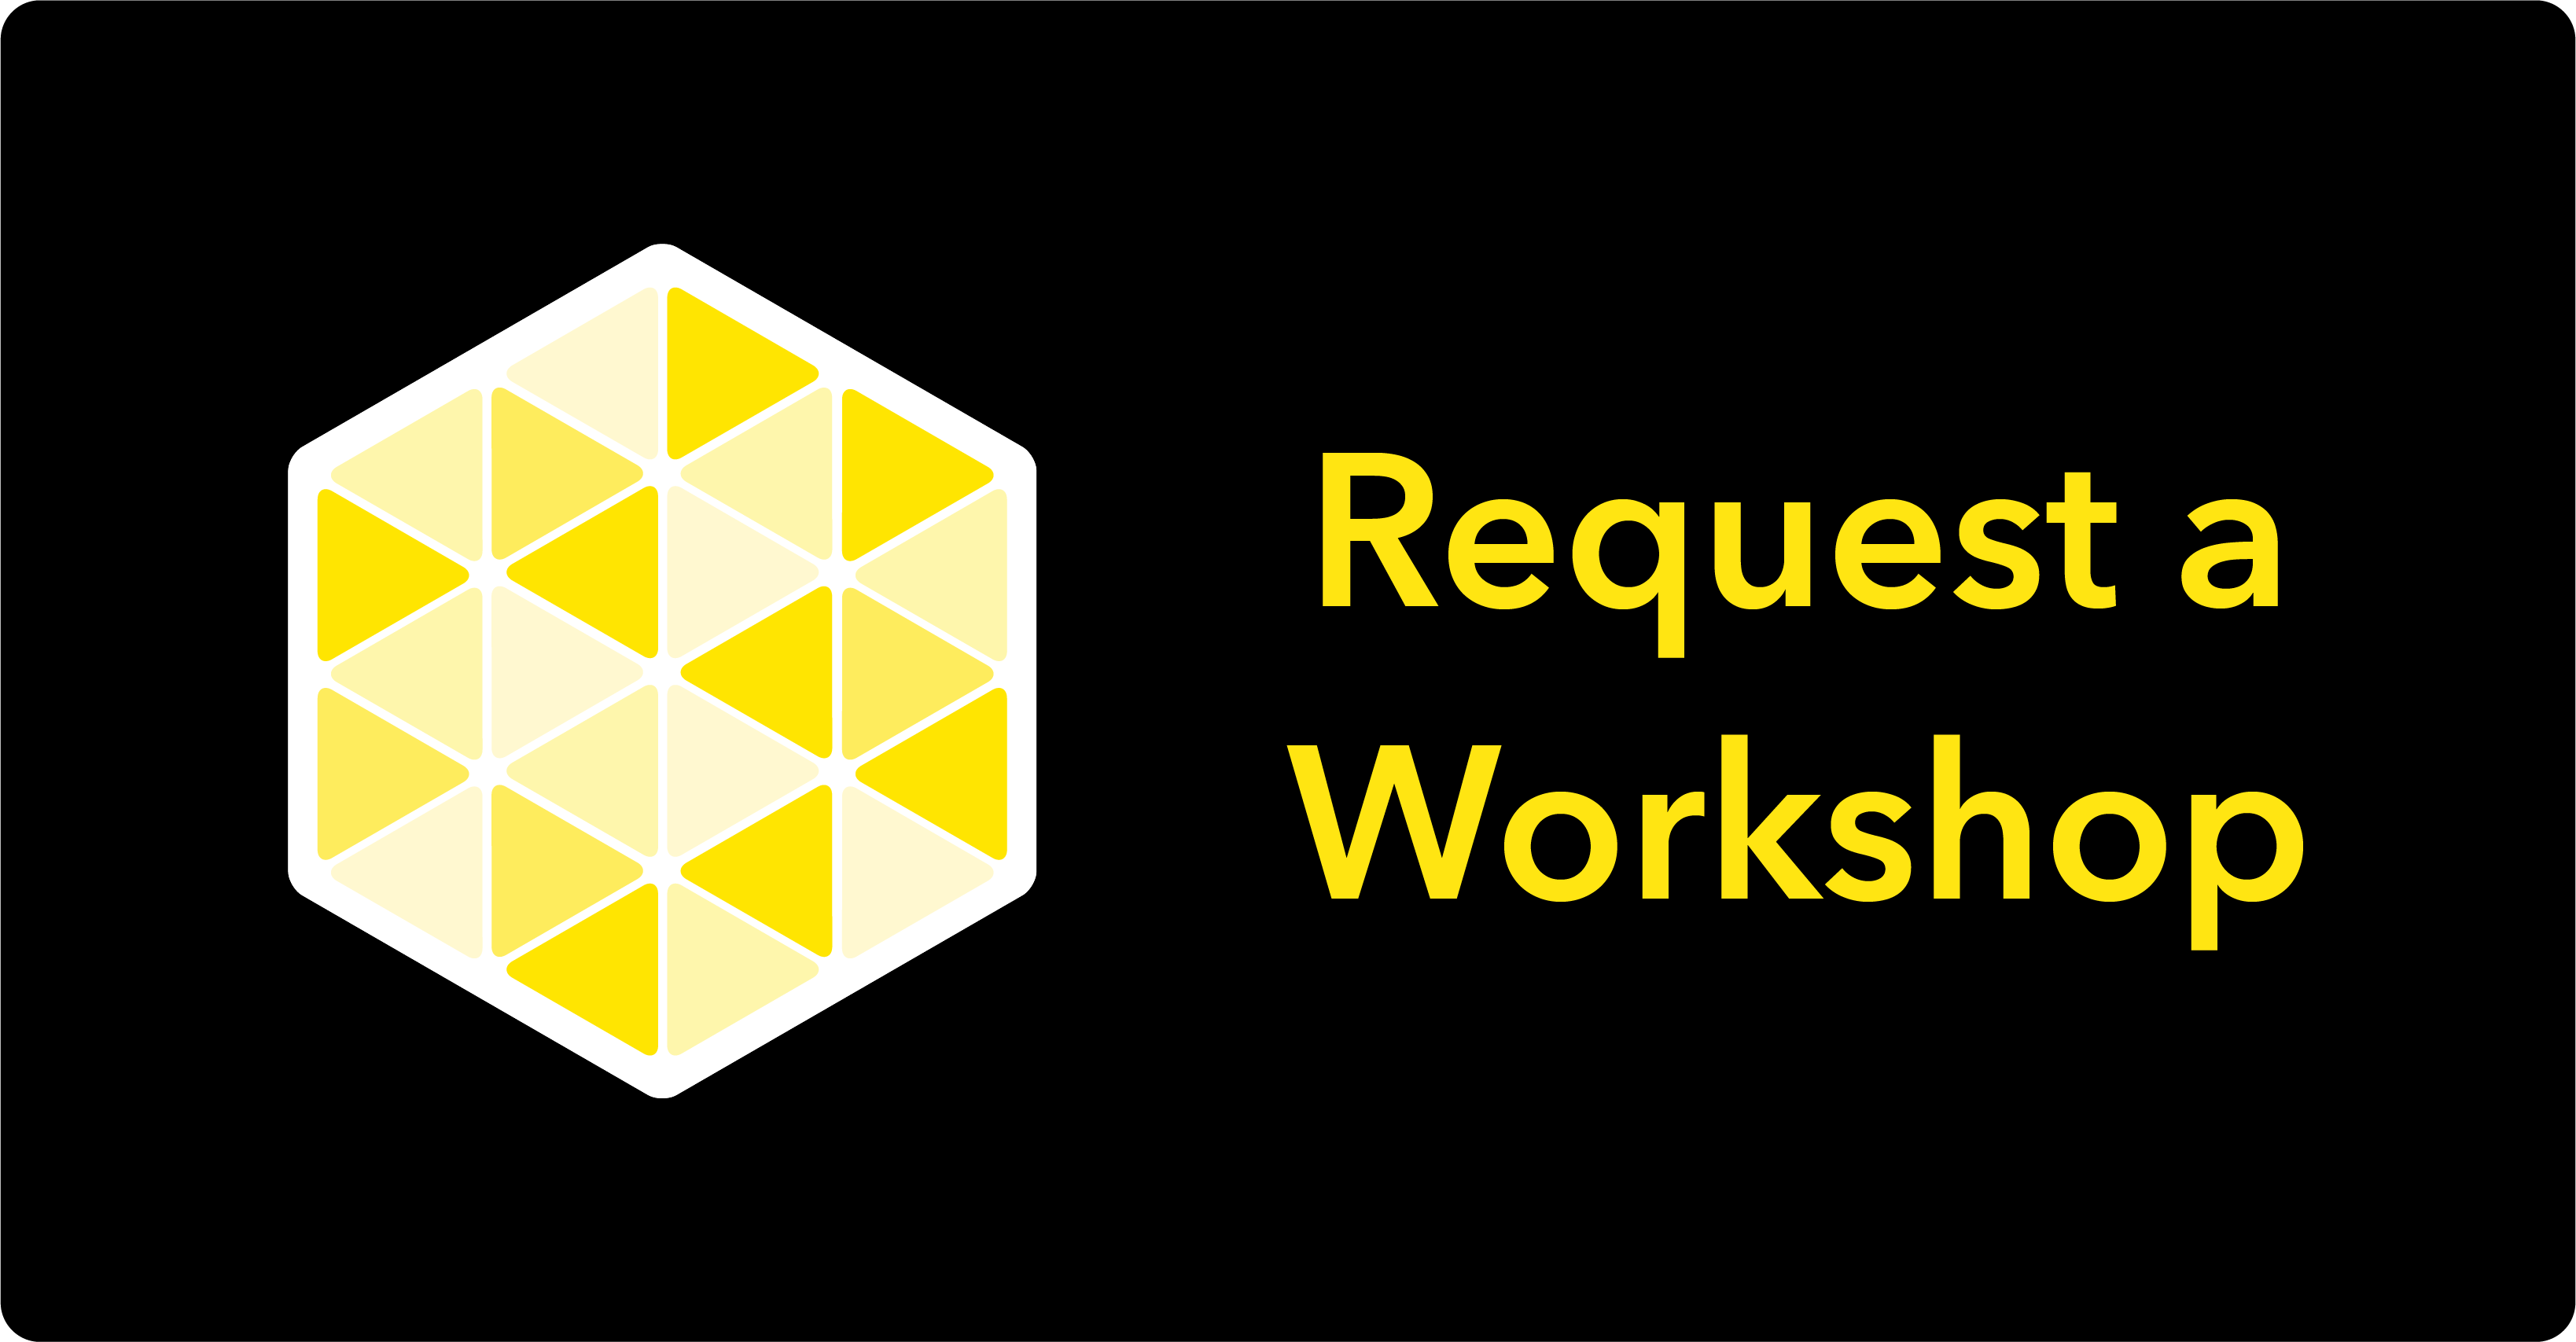 Go to the DesignLab Workshop Request Form by clicking this button